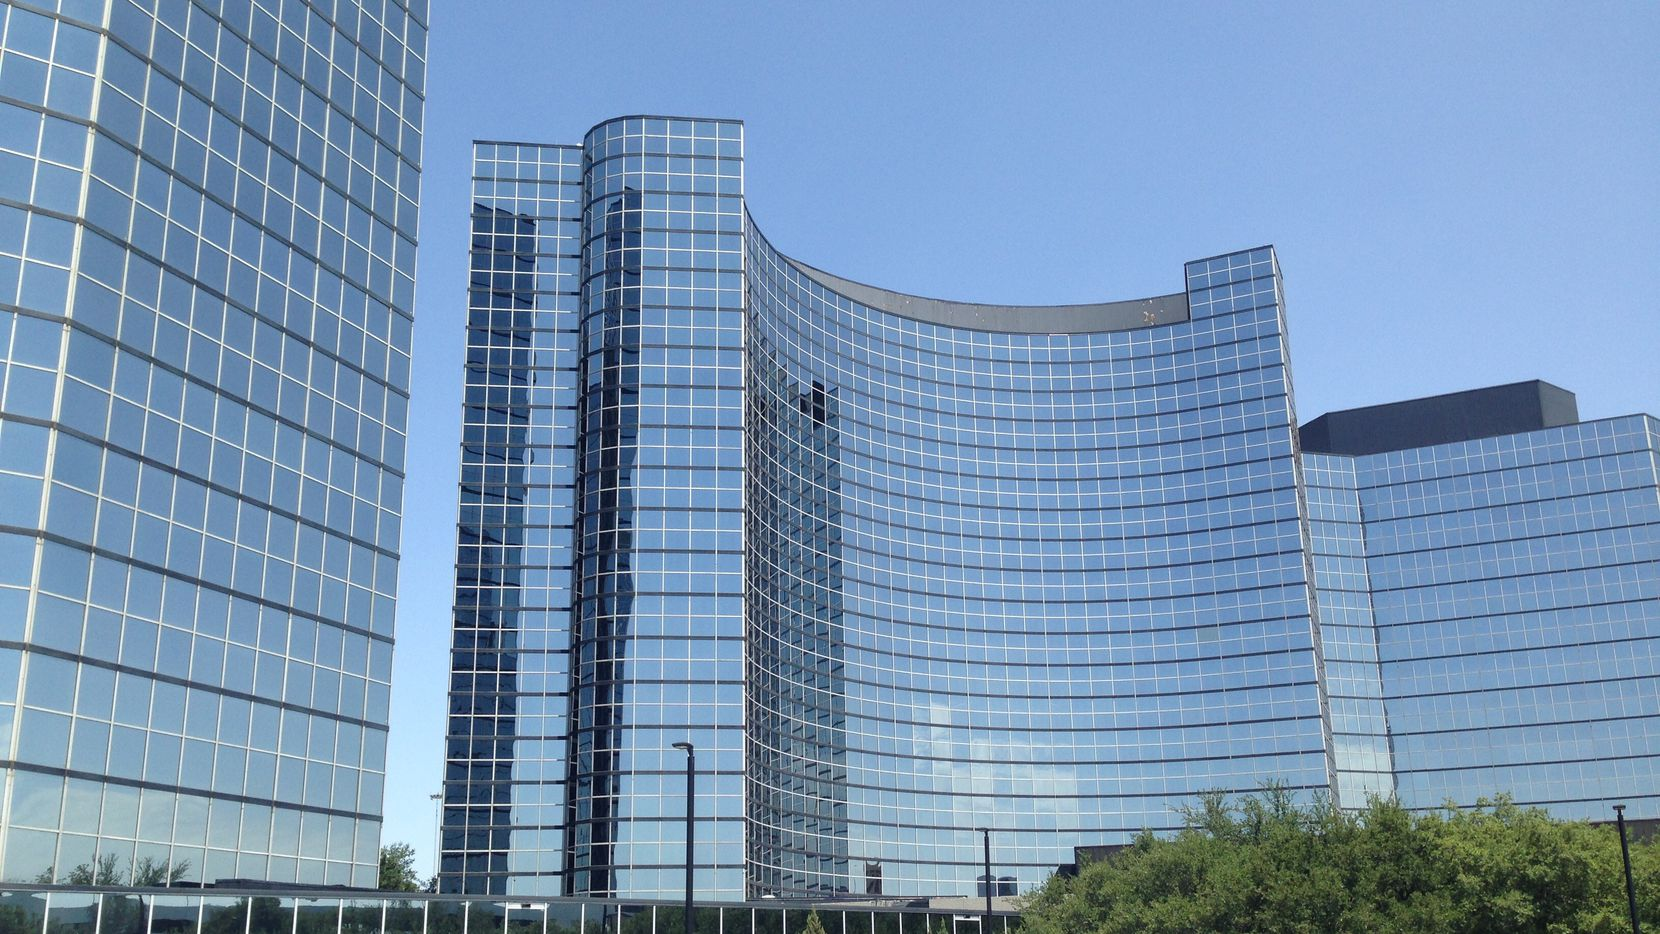 The 500-room Hilton hotel is one of North Dallas' largest.